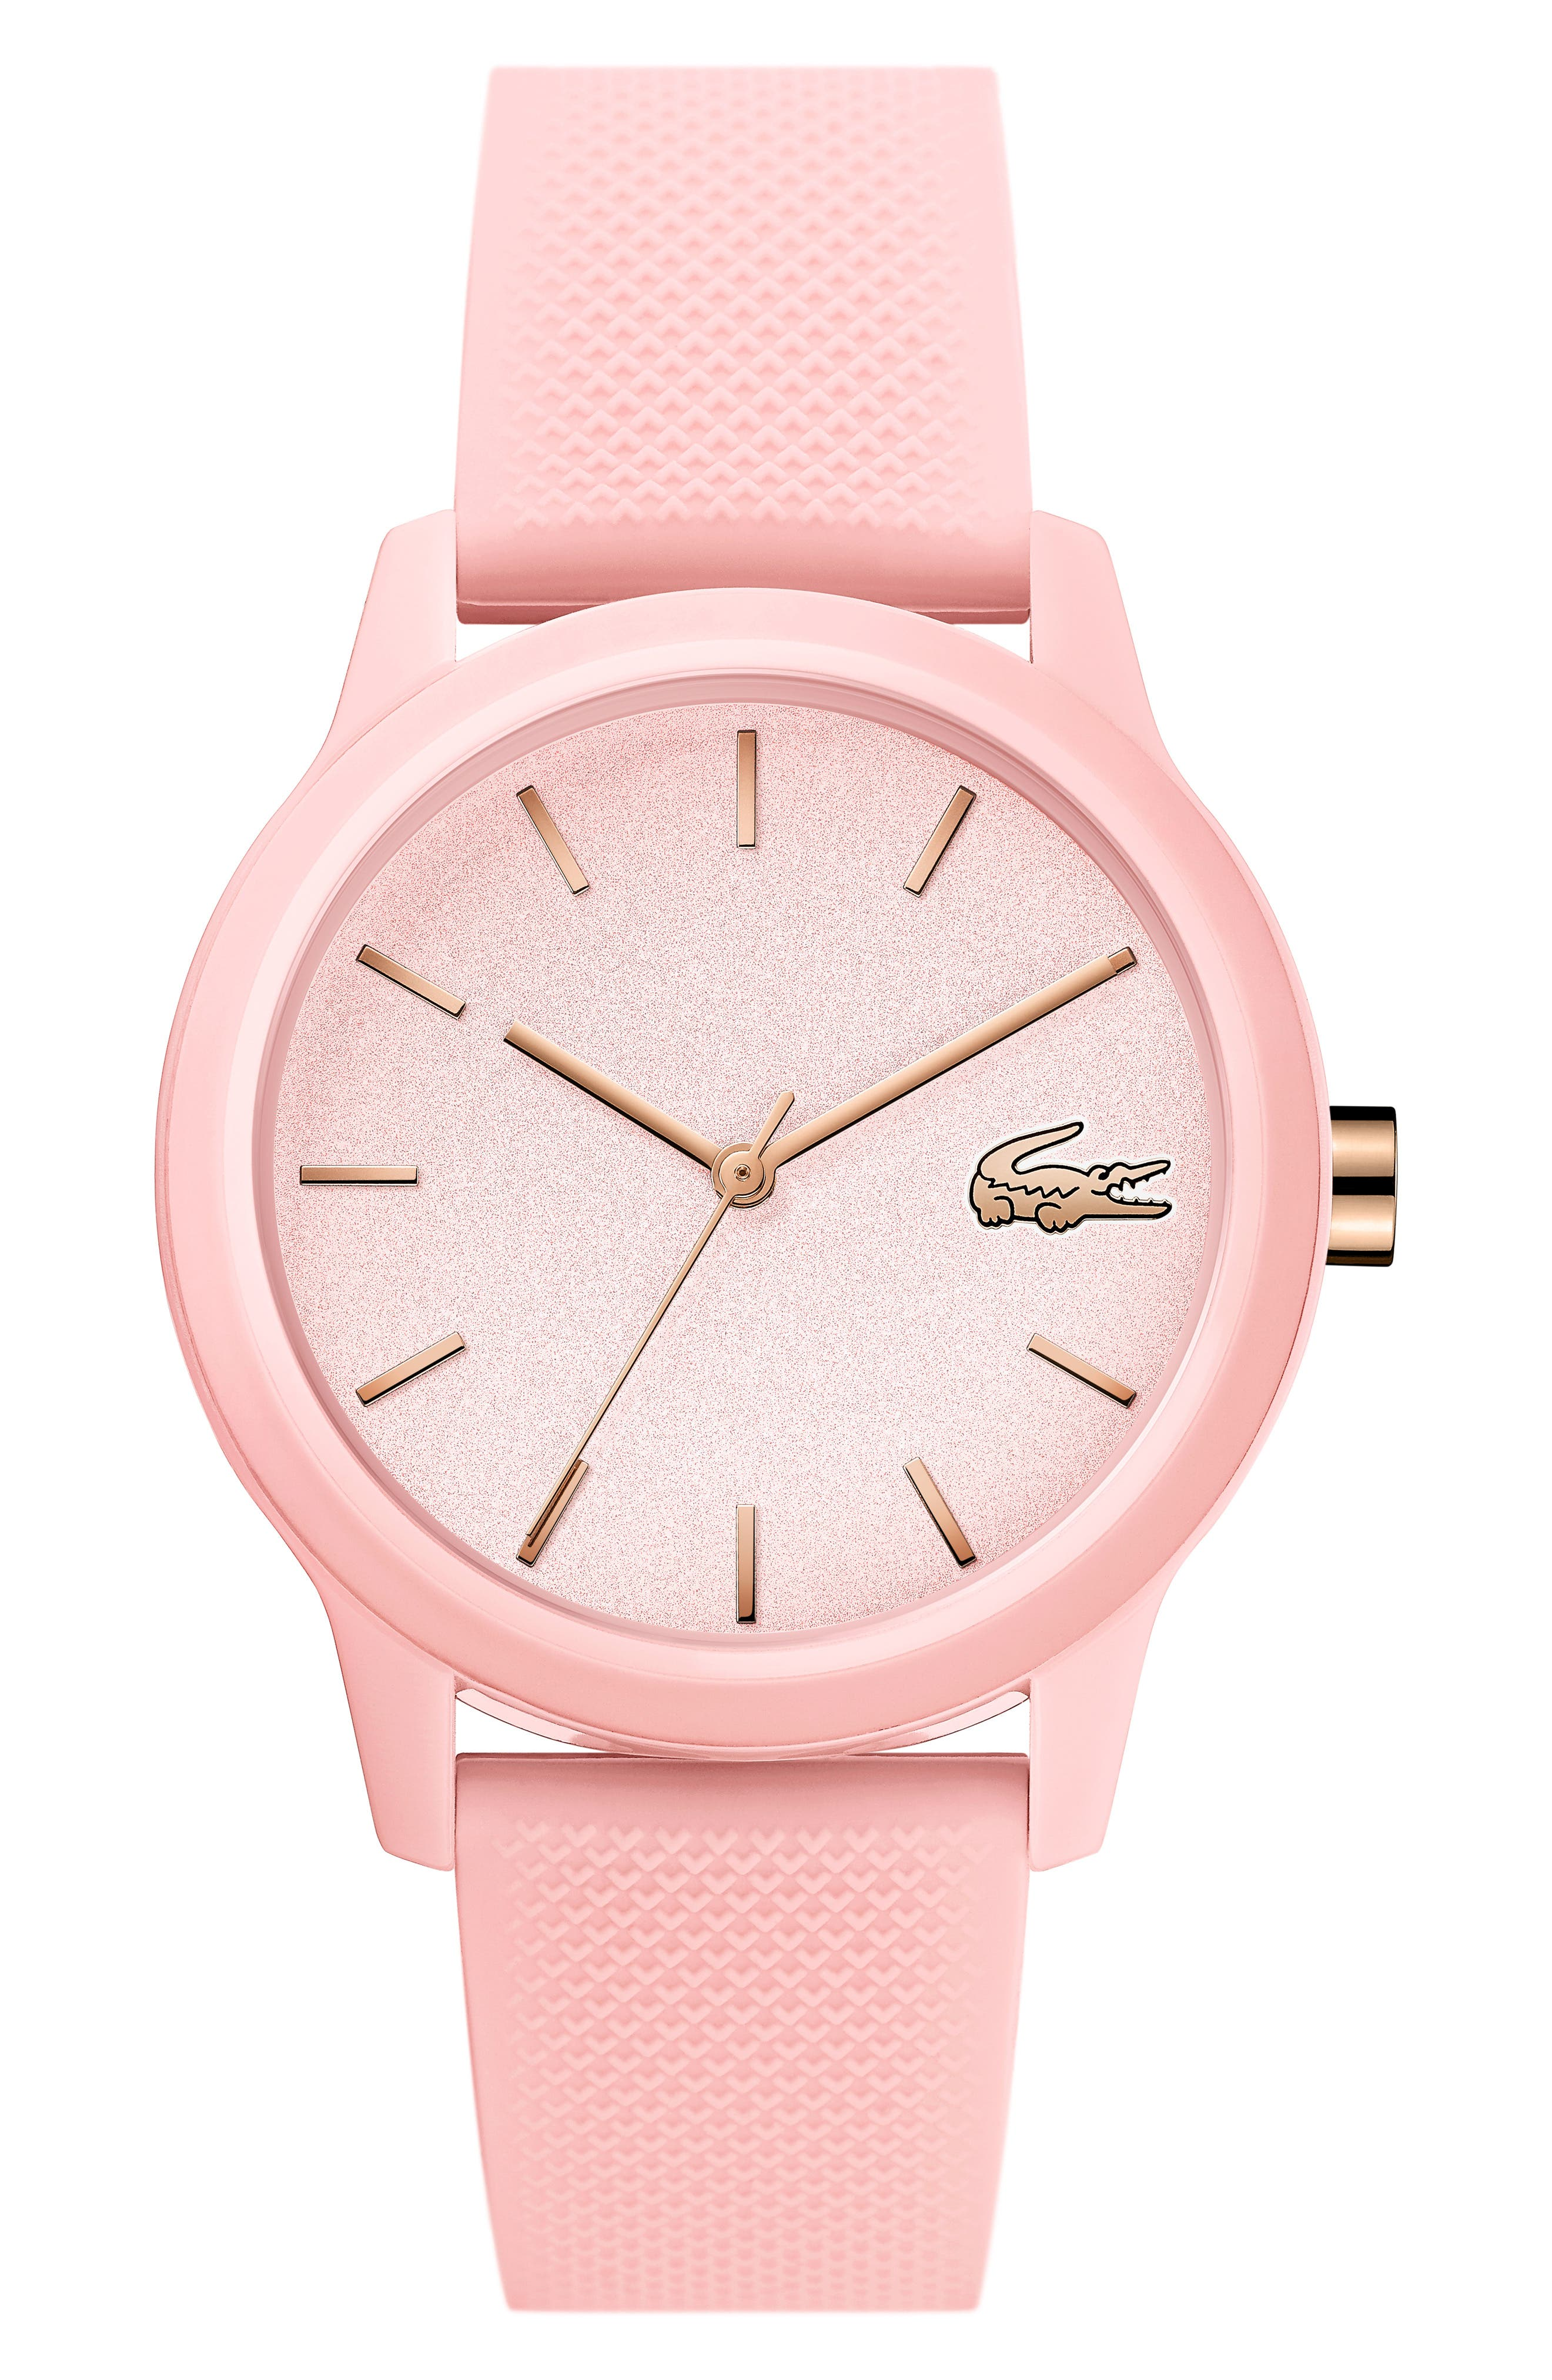 LACOSTE, 12.12 Silicone Strap Watch, 36mm, Main thumbnail 1, color, PINK